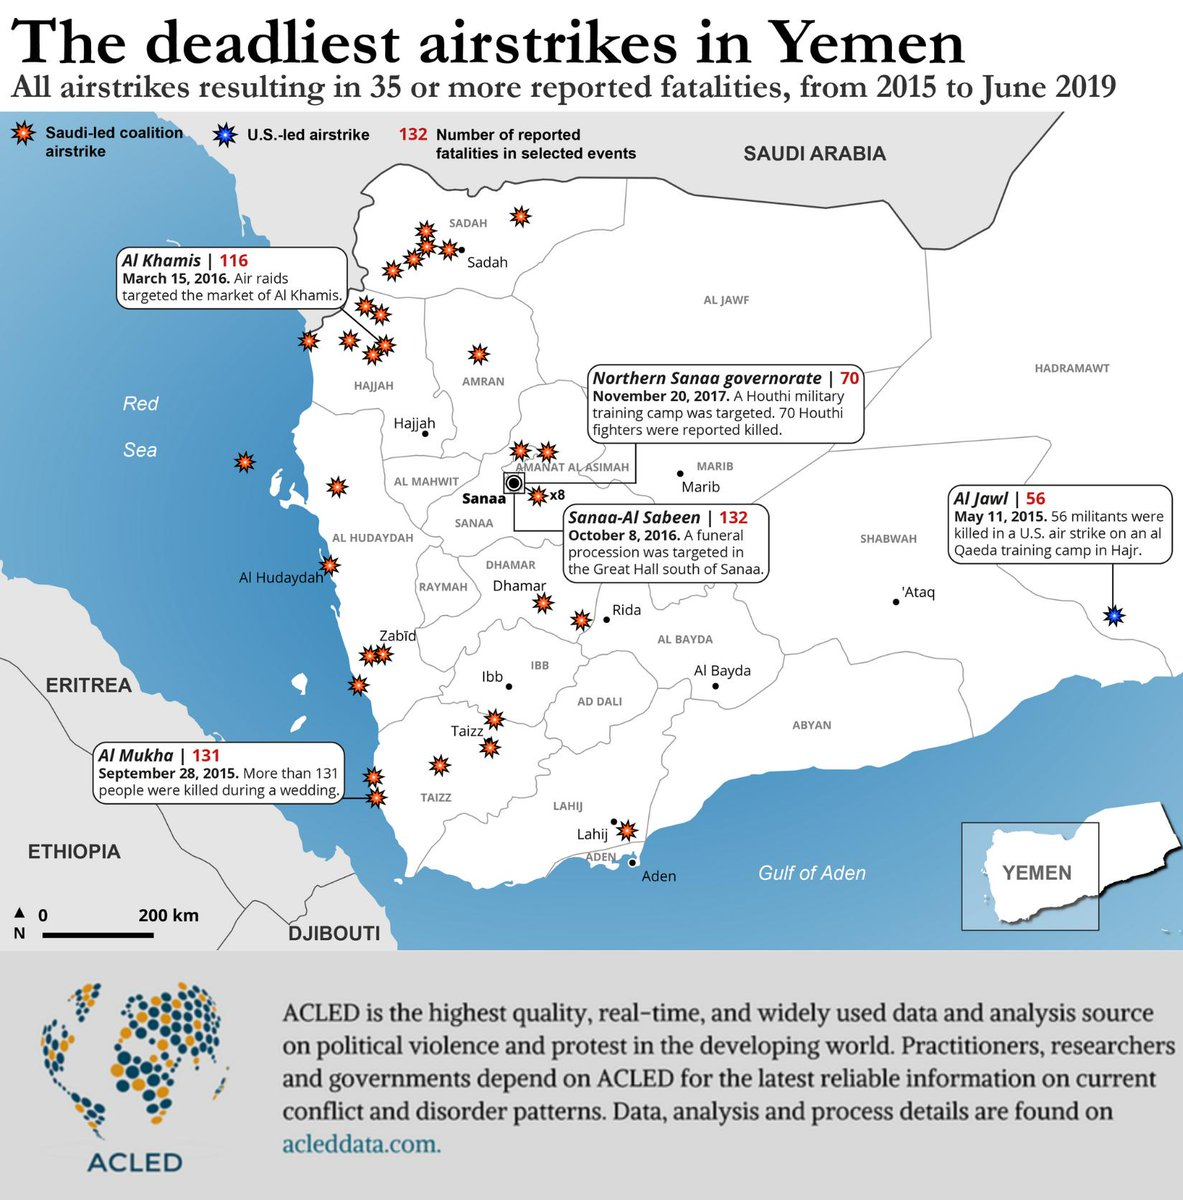 BREAKING: #YemenWar Death Toll Exceeds 90,000 According to New @ACLEDINFO Data for 2015ACLED has now extended #Yemen coverage from the present back through 2015, capturing the full int'l intervention into the country's civil war. Press release here: https://bit.ly/2XpFpuJ